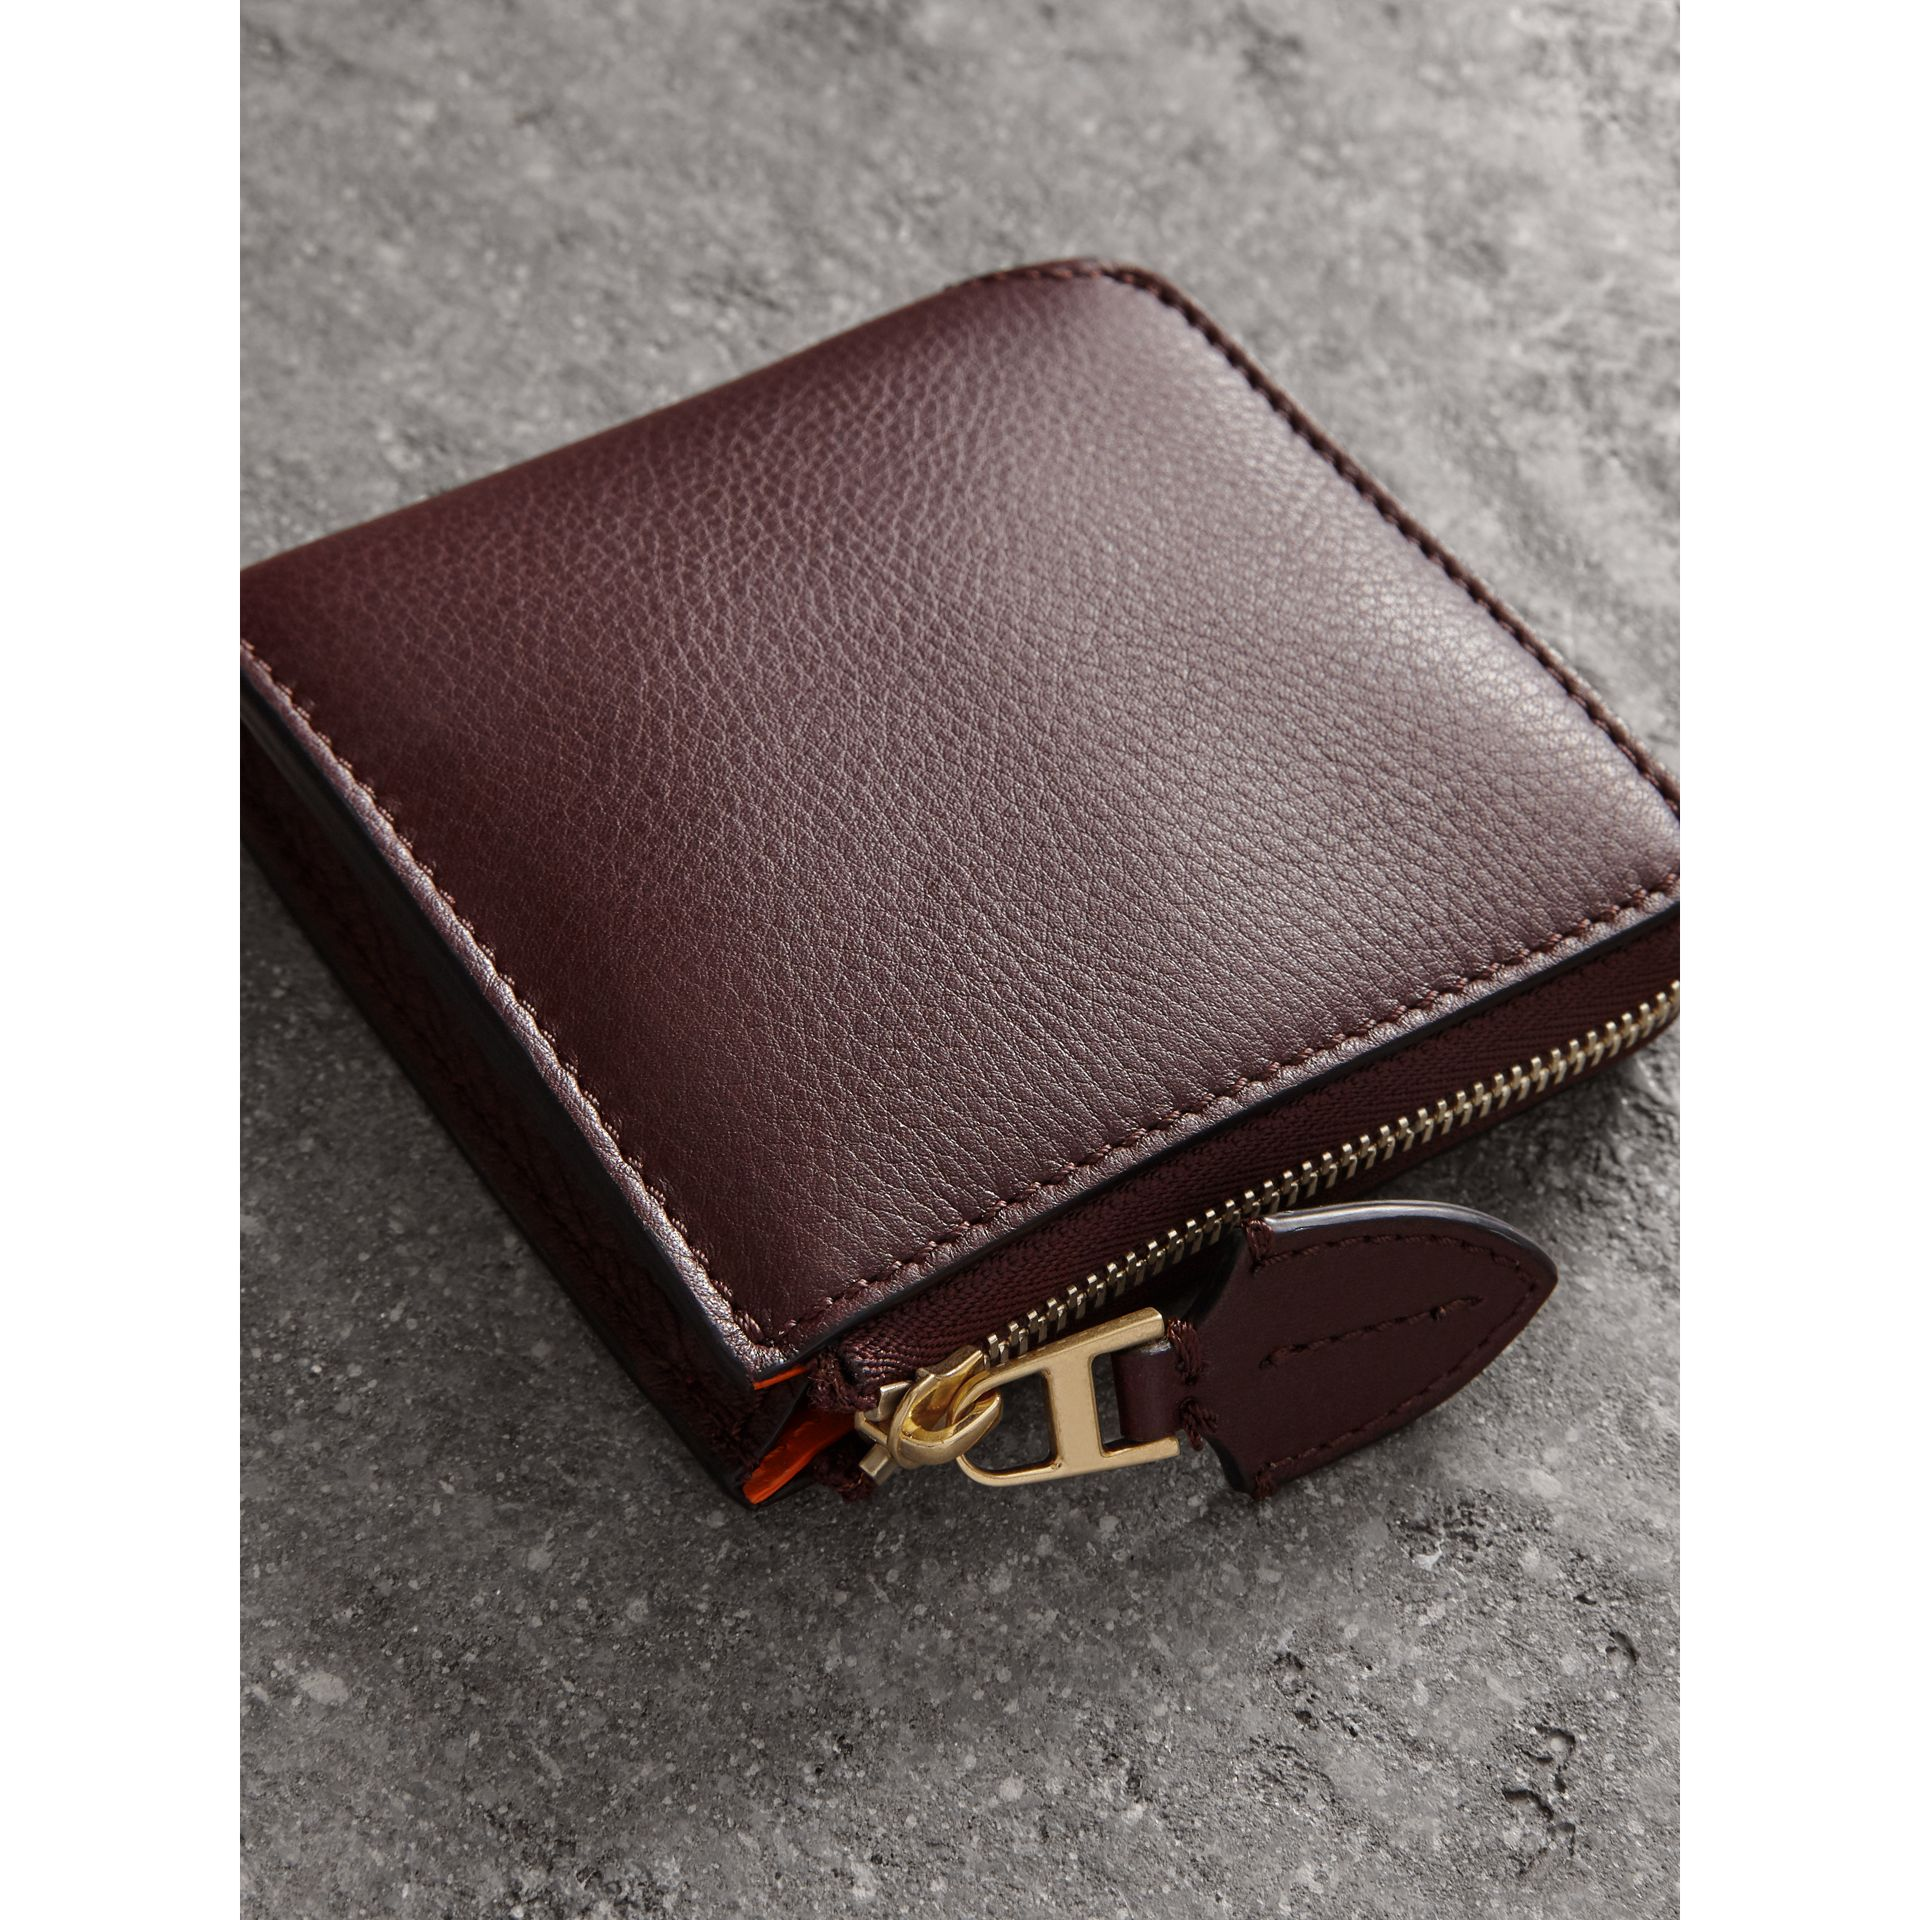 Grainy Leather Square Ziparound Wallet in Deep Claret - Women | Burberry Canada - gallery image 2